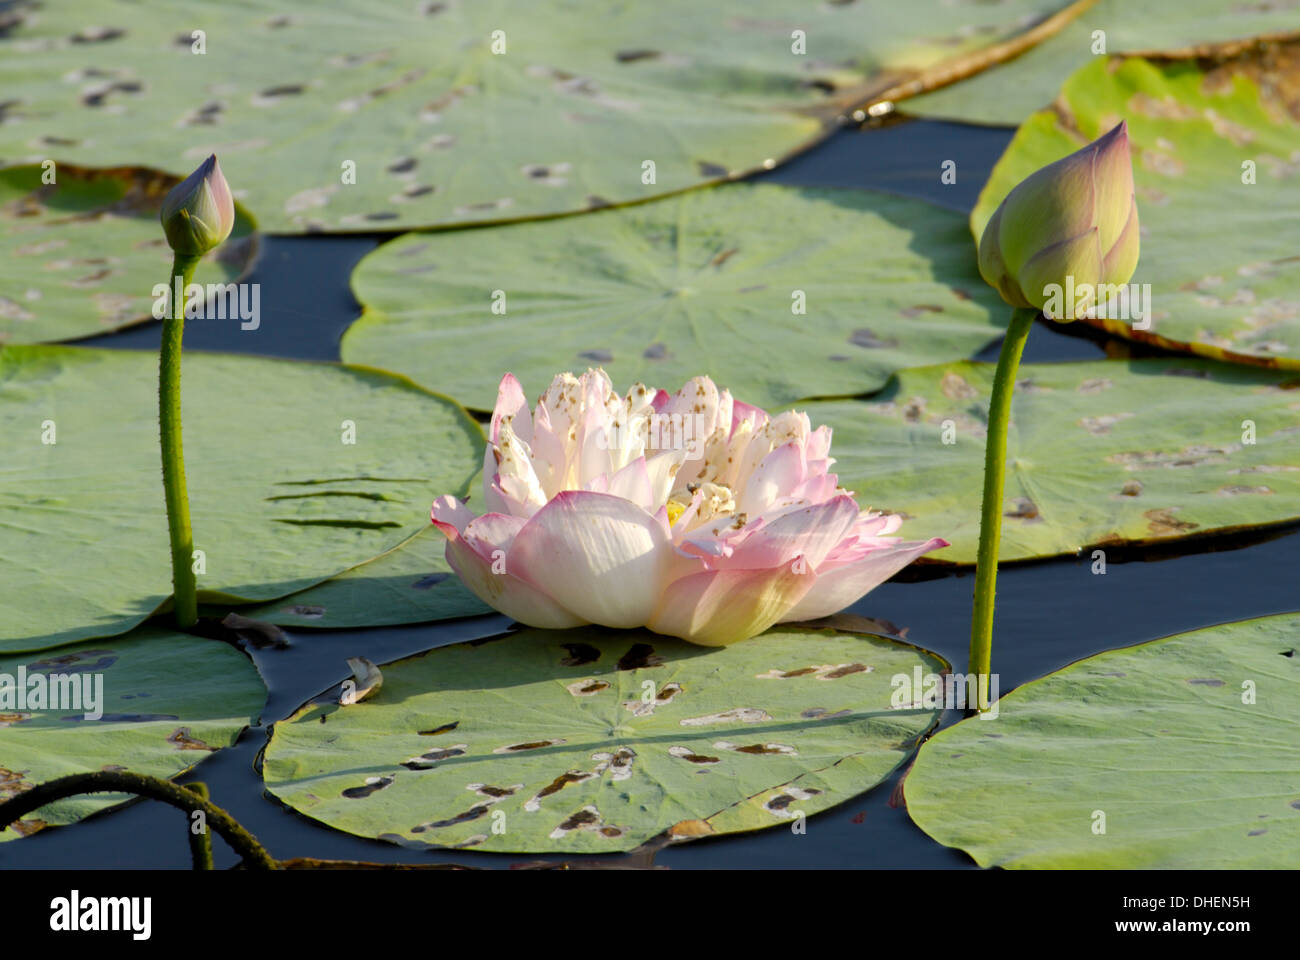 Pink lotus water lilies floating in pond flower stock photos pink pond filled with lotus tamil nadu india asia stock image izmirmasajfo